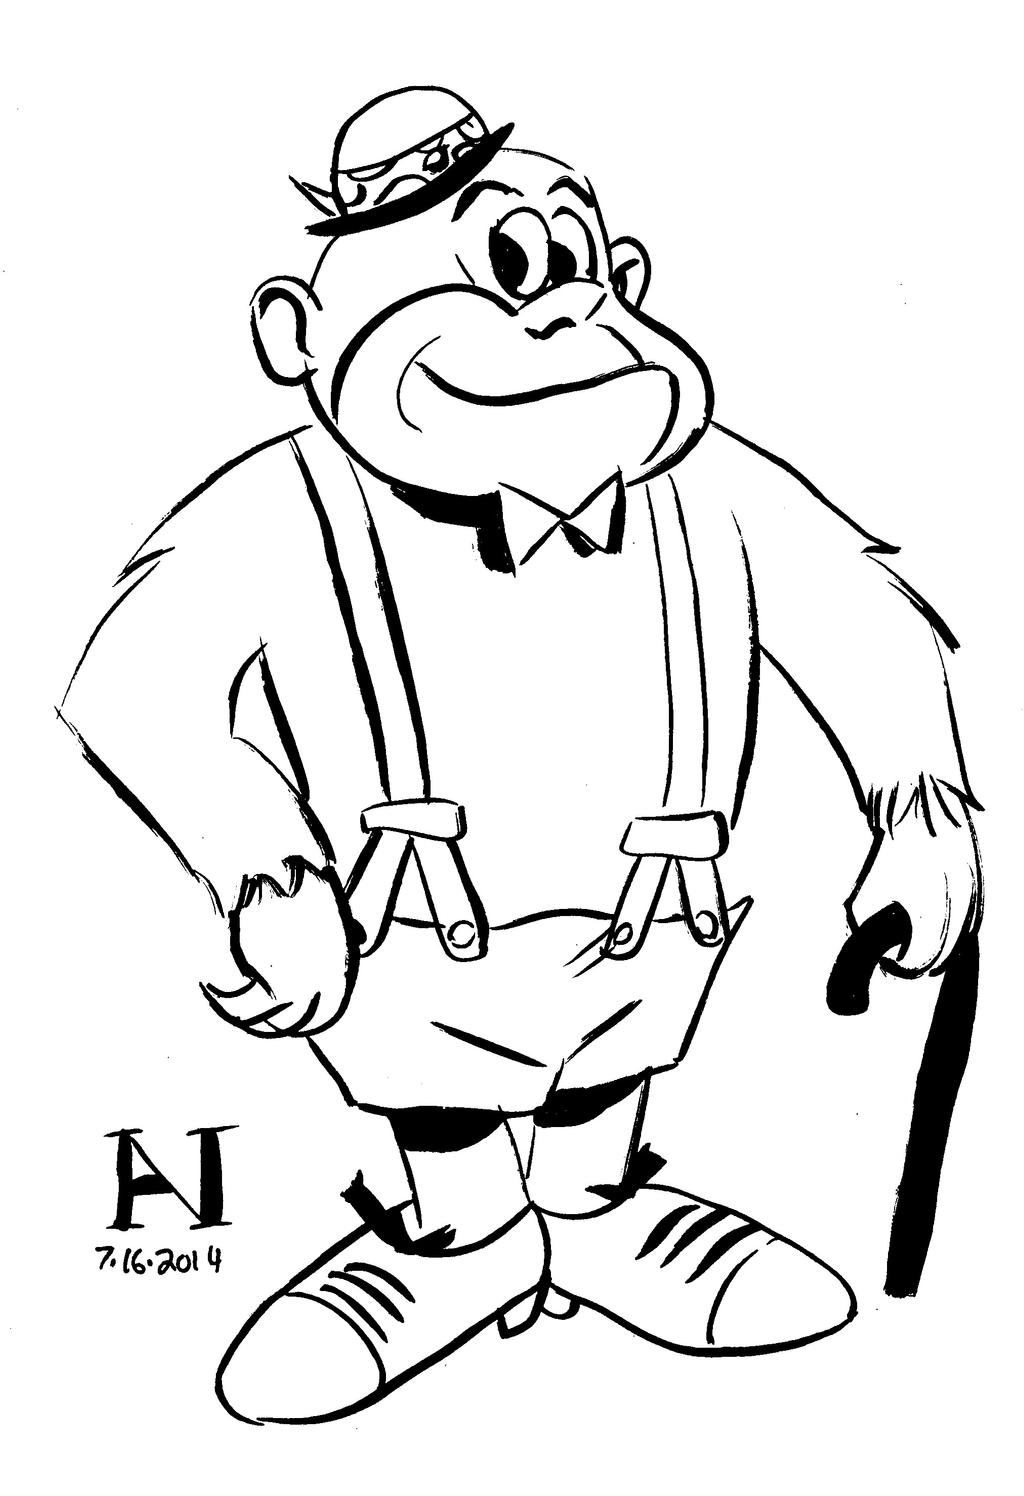 Magilla Gorilla Coloring Pages